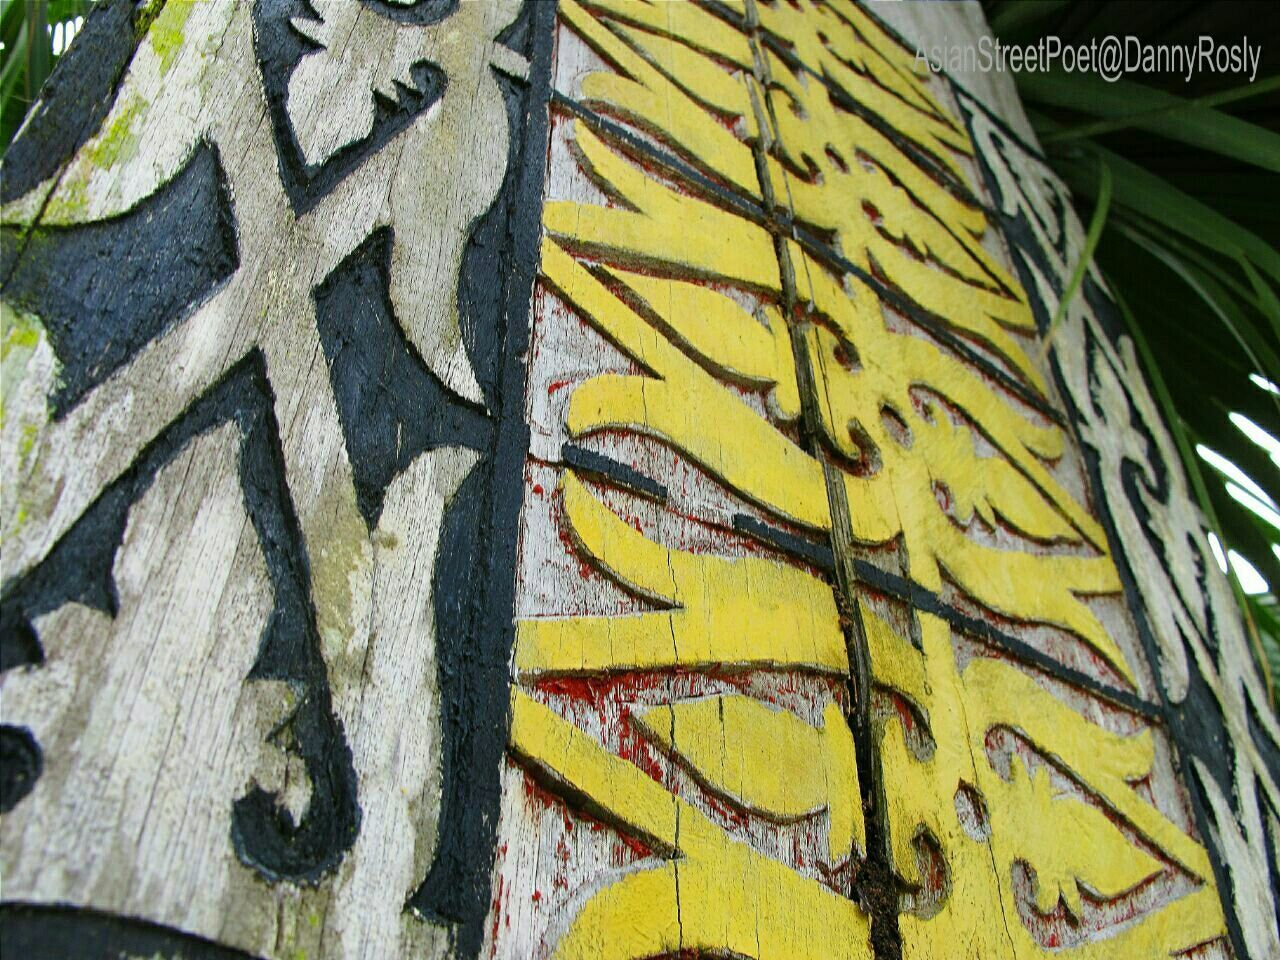 close-up, yellow, outdoors, no people, day, animal themes, nature